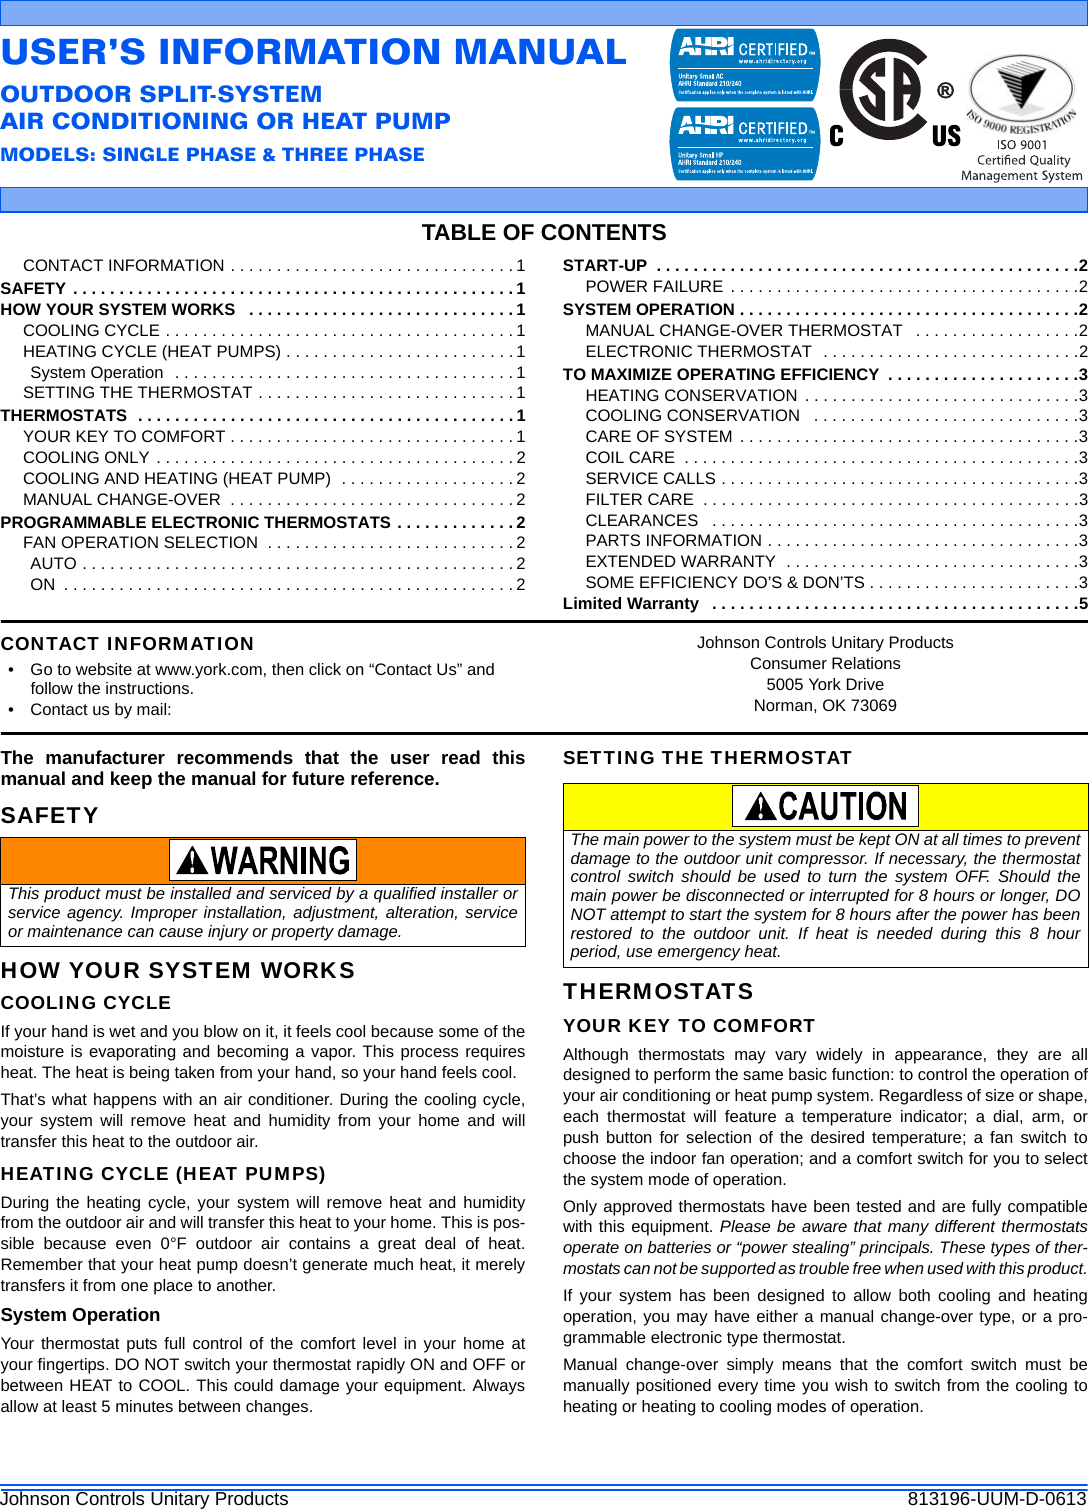 York Affinity Tchd Air Conditioner Owner S 813196 Uum D 0613 User Manual Heat Pump Schematic Page 1 Of 6